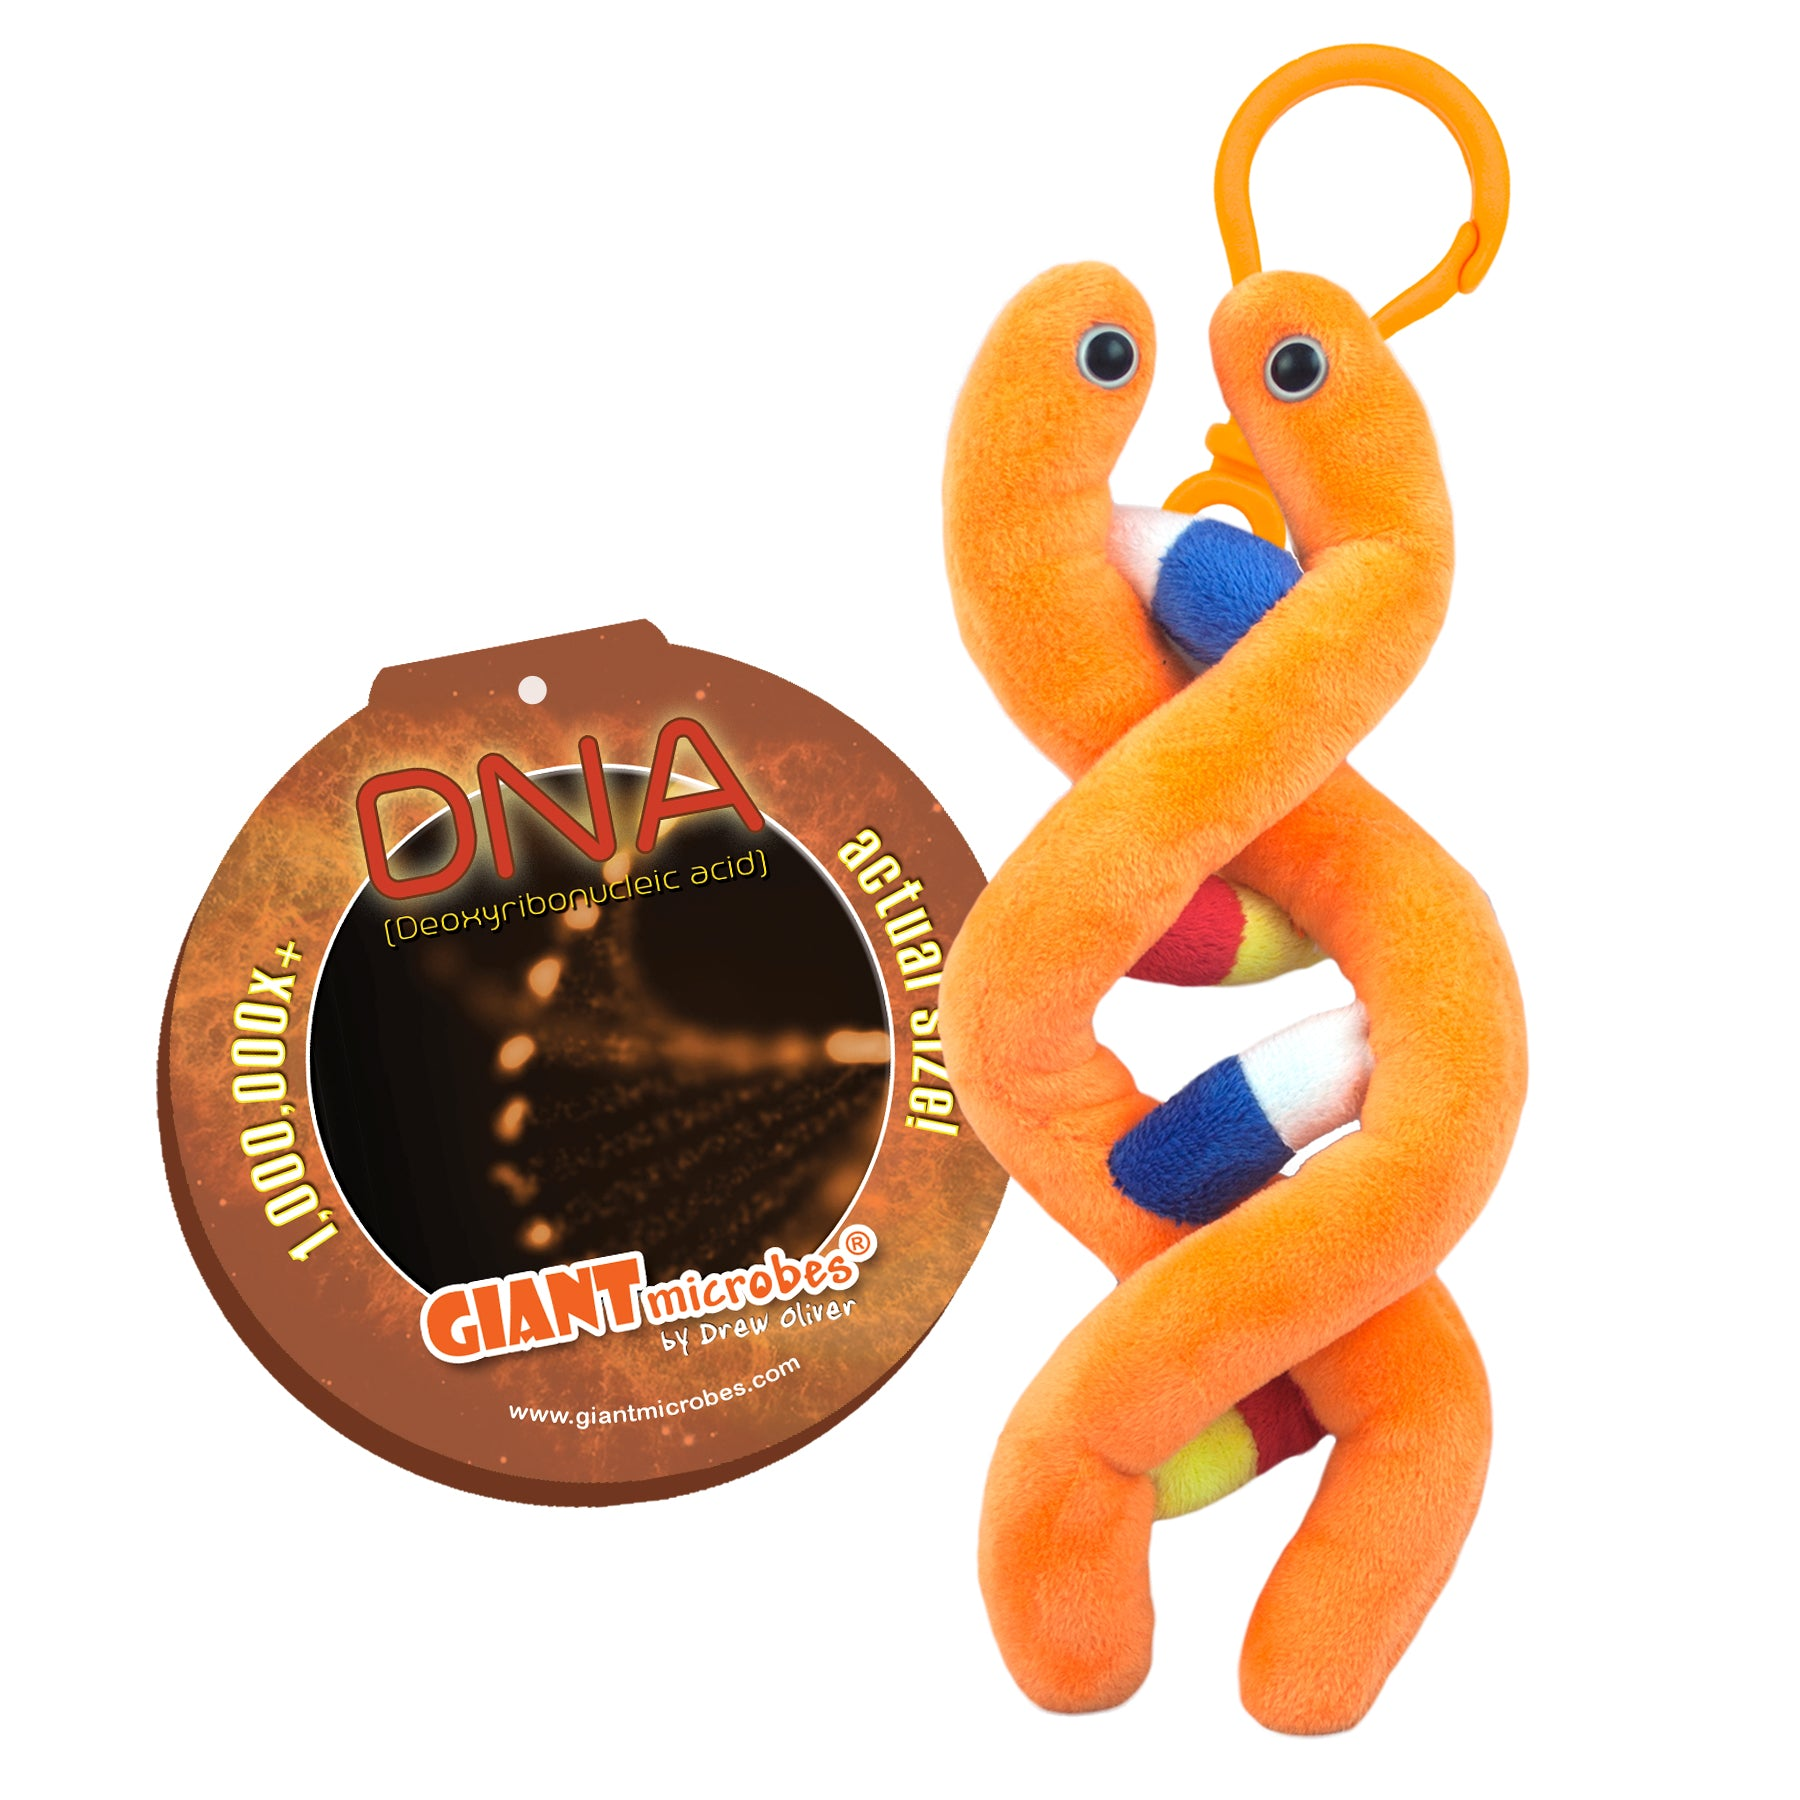 Giant Microbes DNA Keyring - Planet Microbe